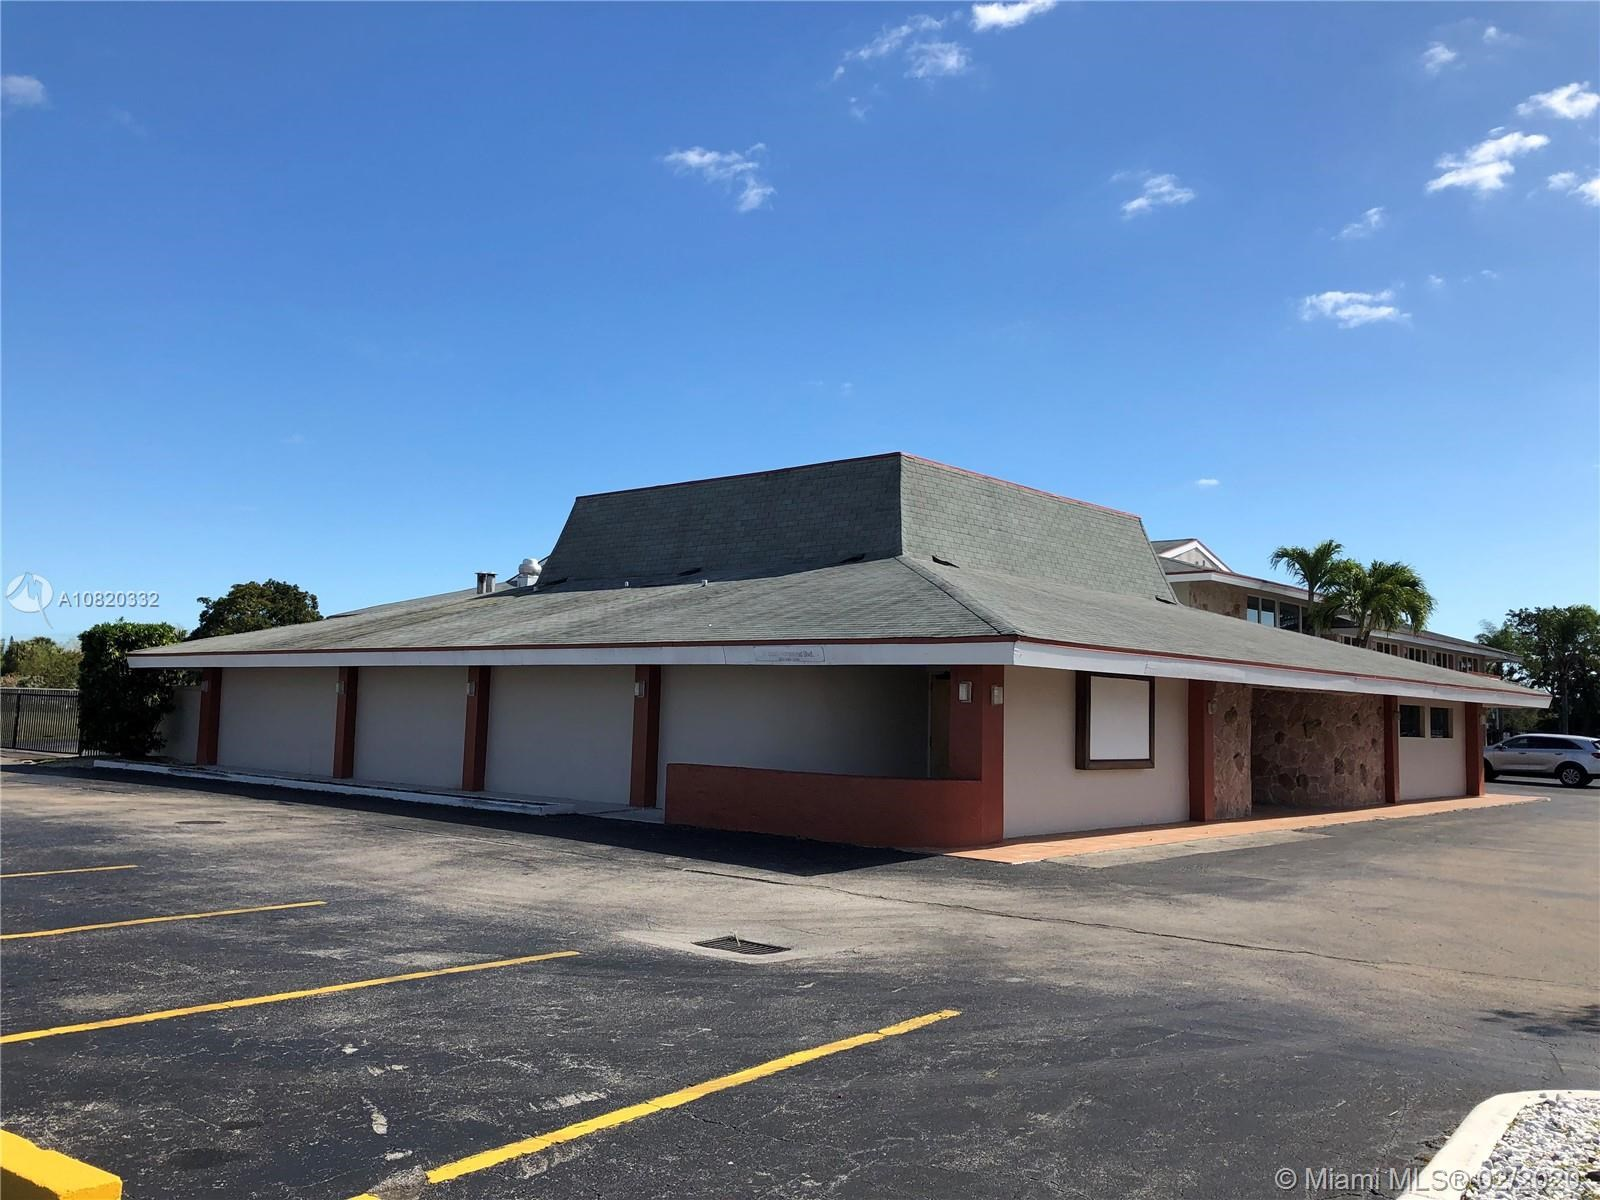 51 S Homestead Blvd, Homestead, FL 33030